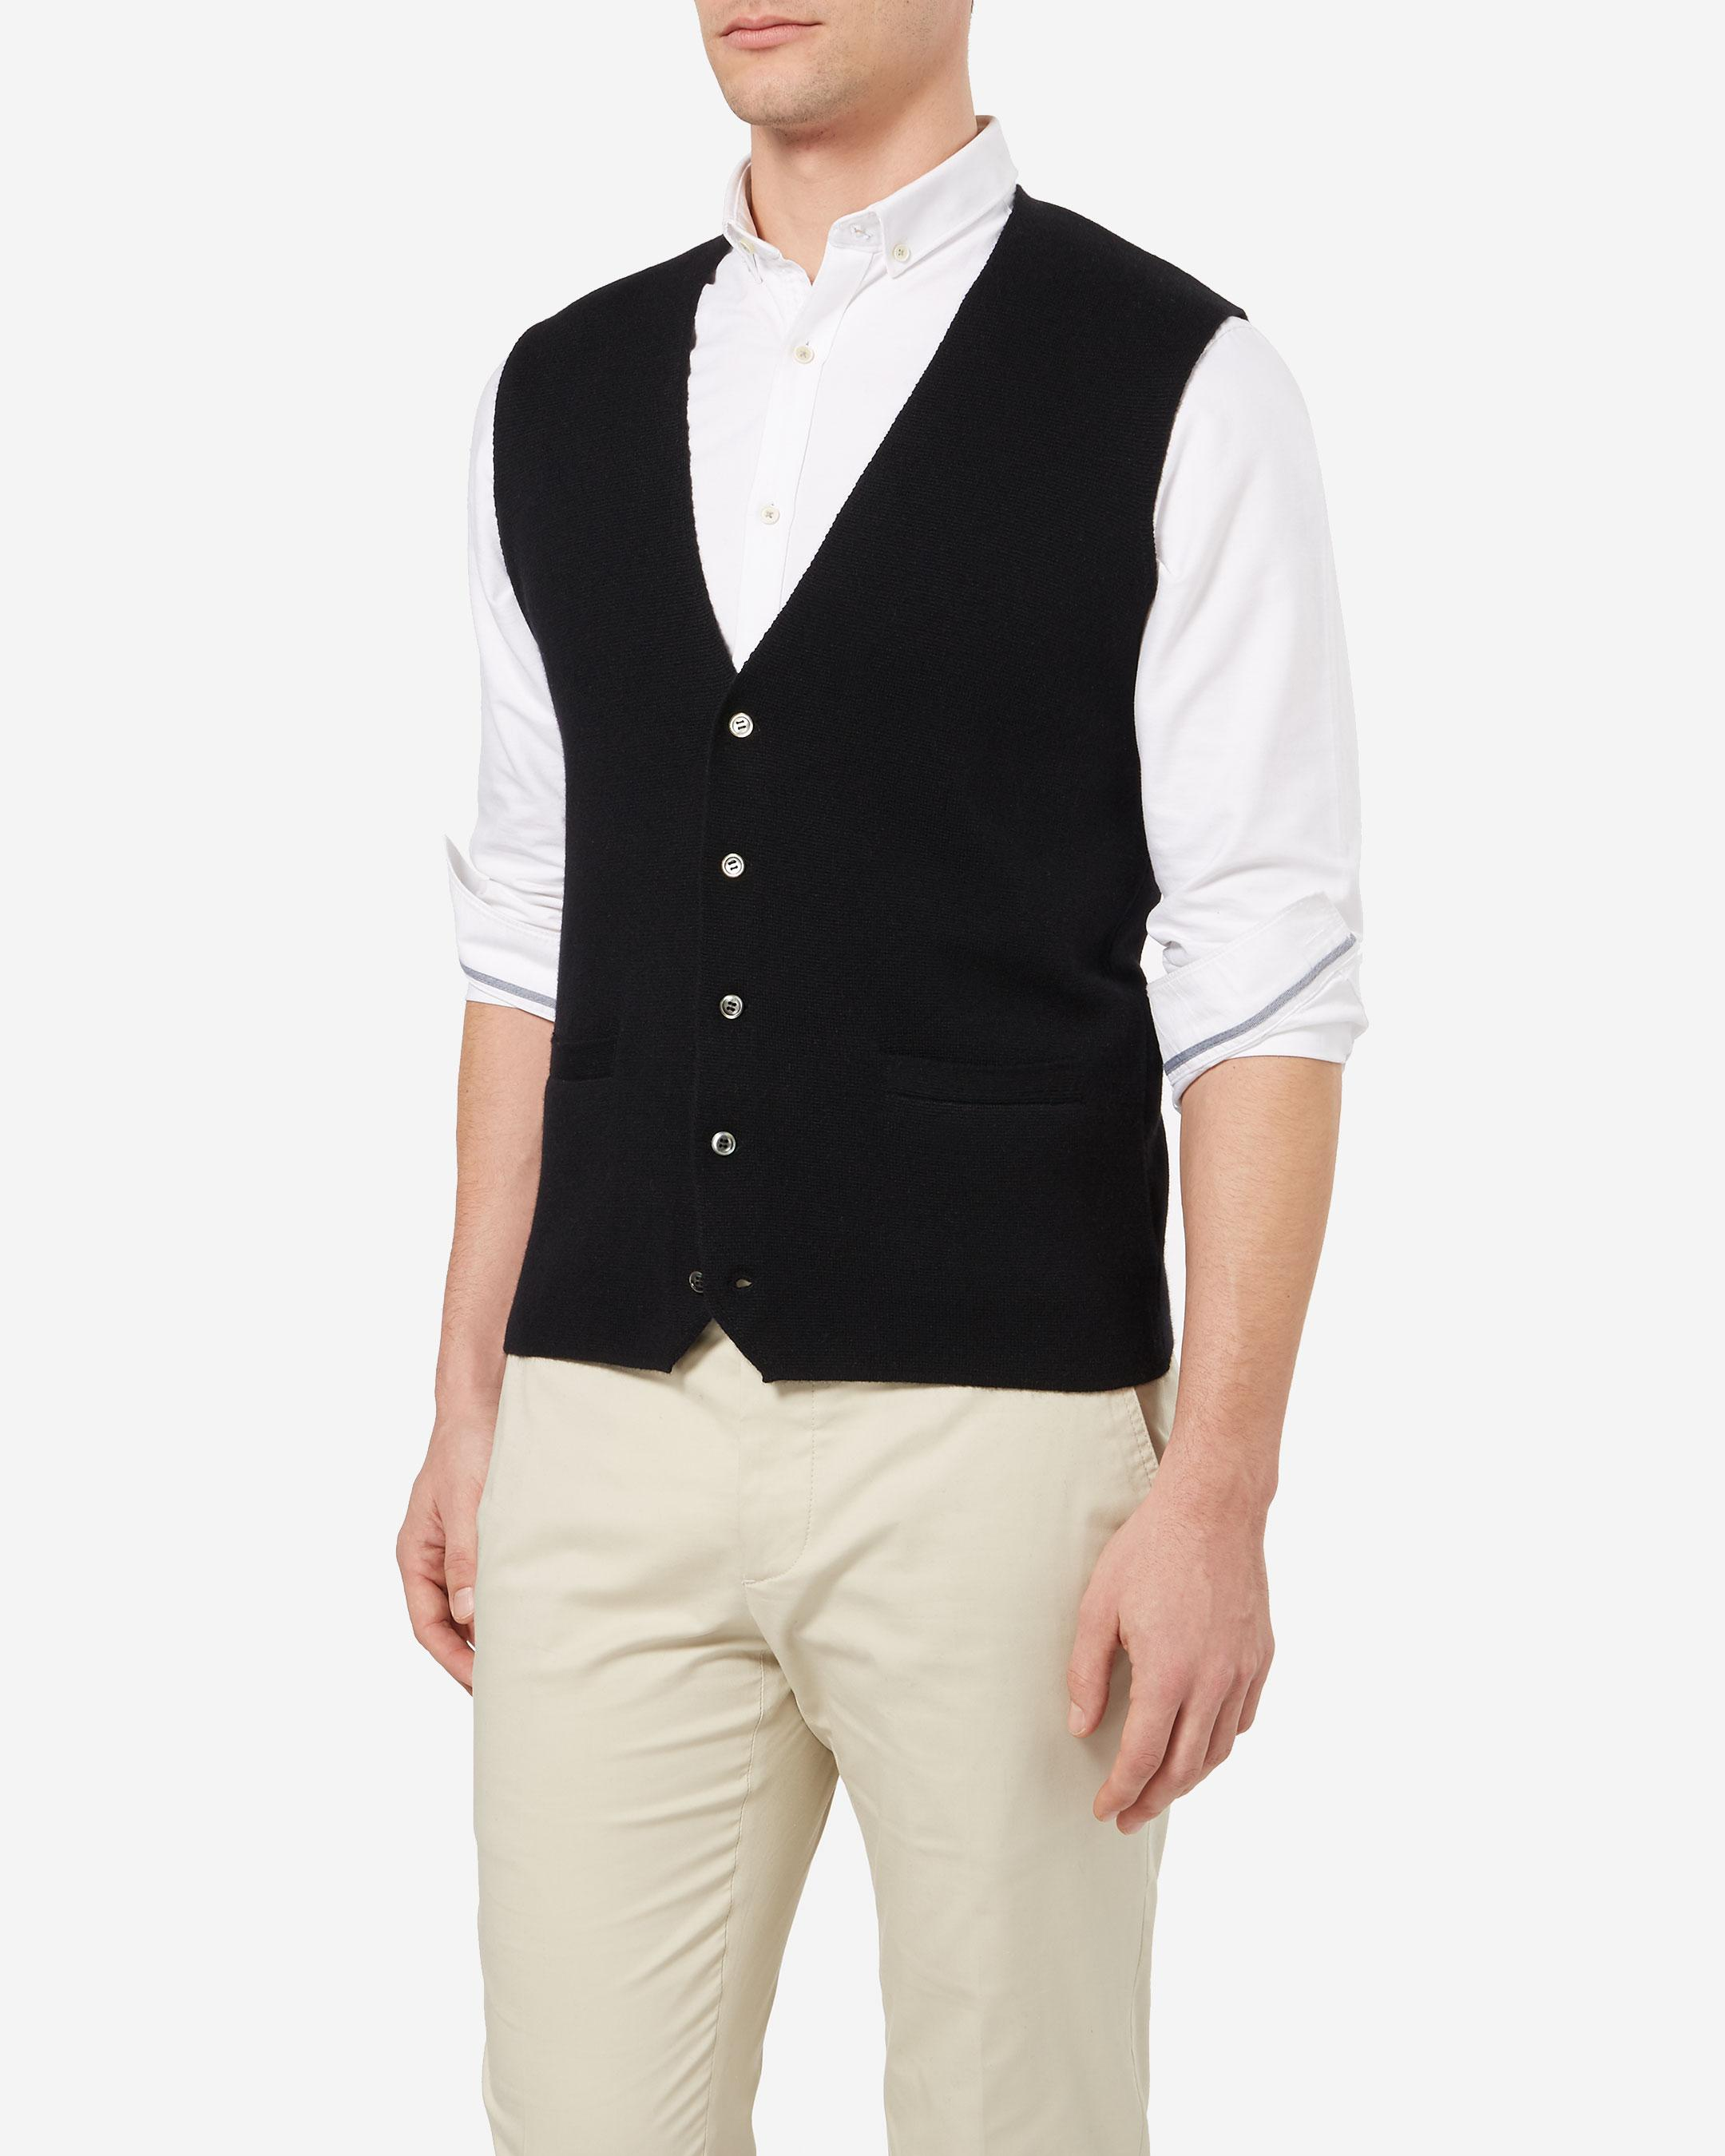 908ce33a382 N.Peal Cashmere The Chelsea Milano Cashmere Waistcoat in Black for ...